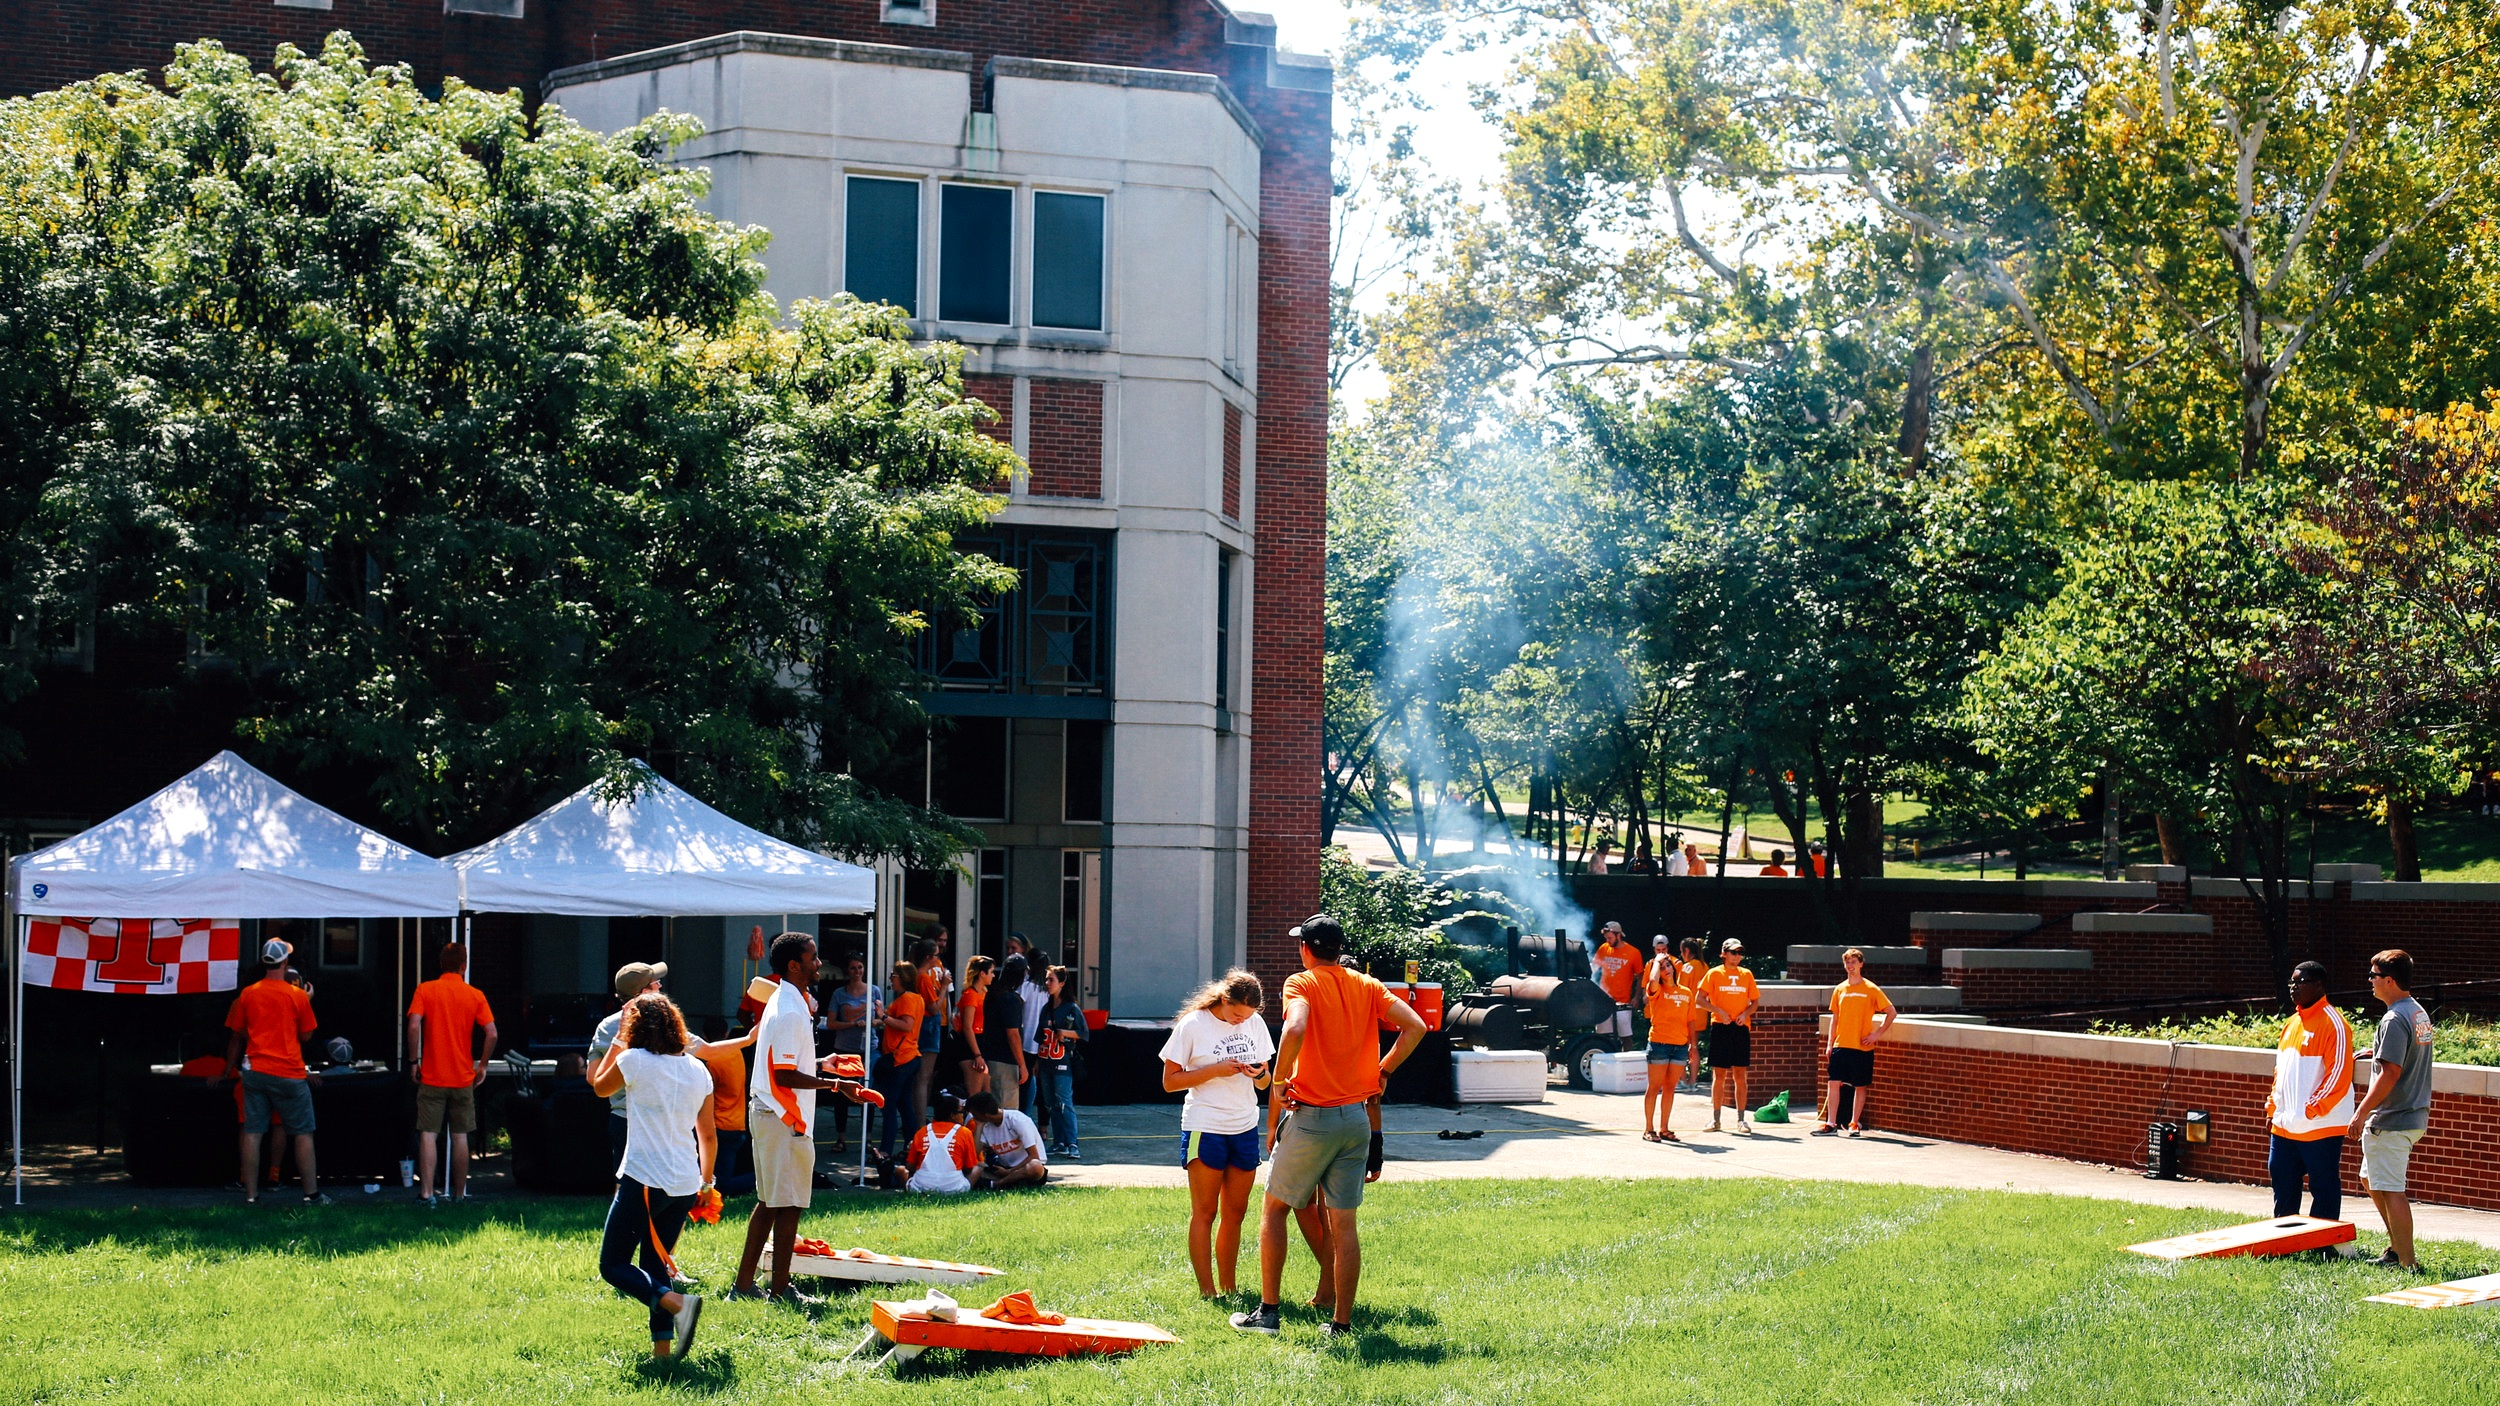 GAME PARTIES + TAILGATES - We bleed orange, sing Rocky Top, and eat fried Gator once a year. Win or lose, we'll cheer on the Vols and have a good time doing it.